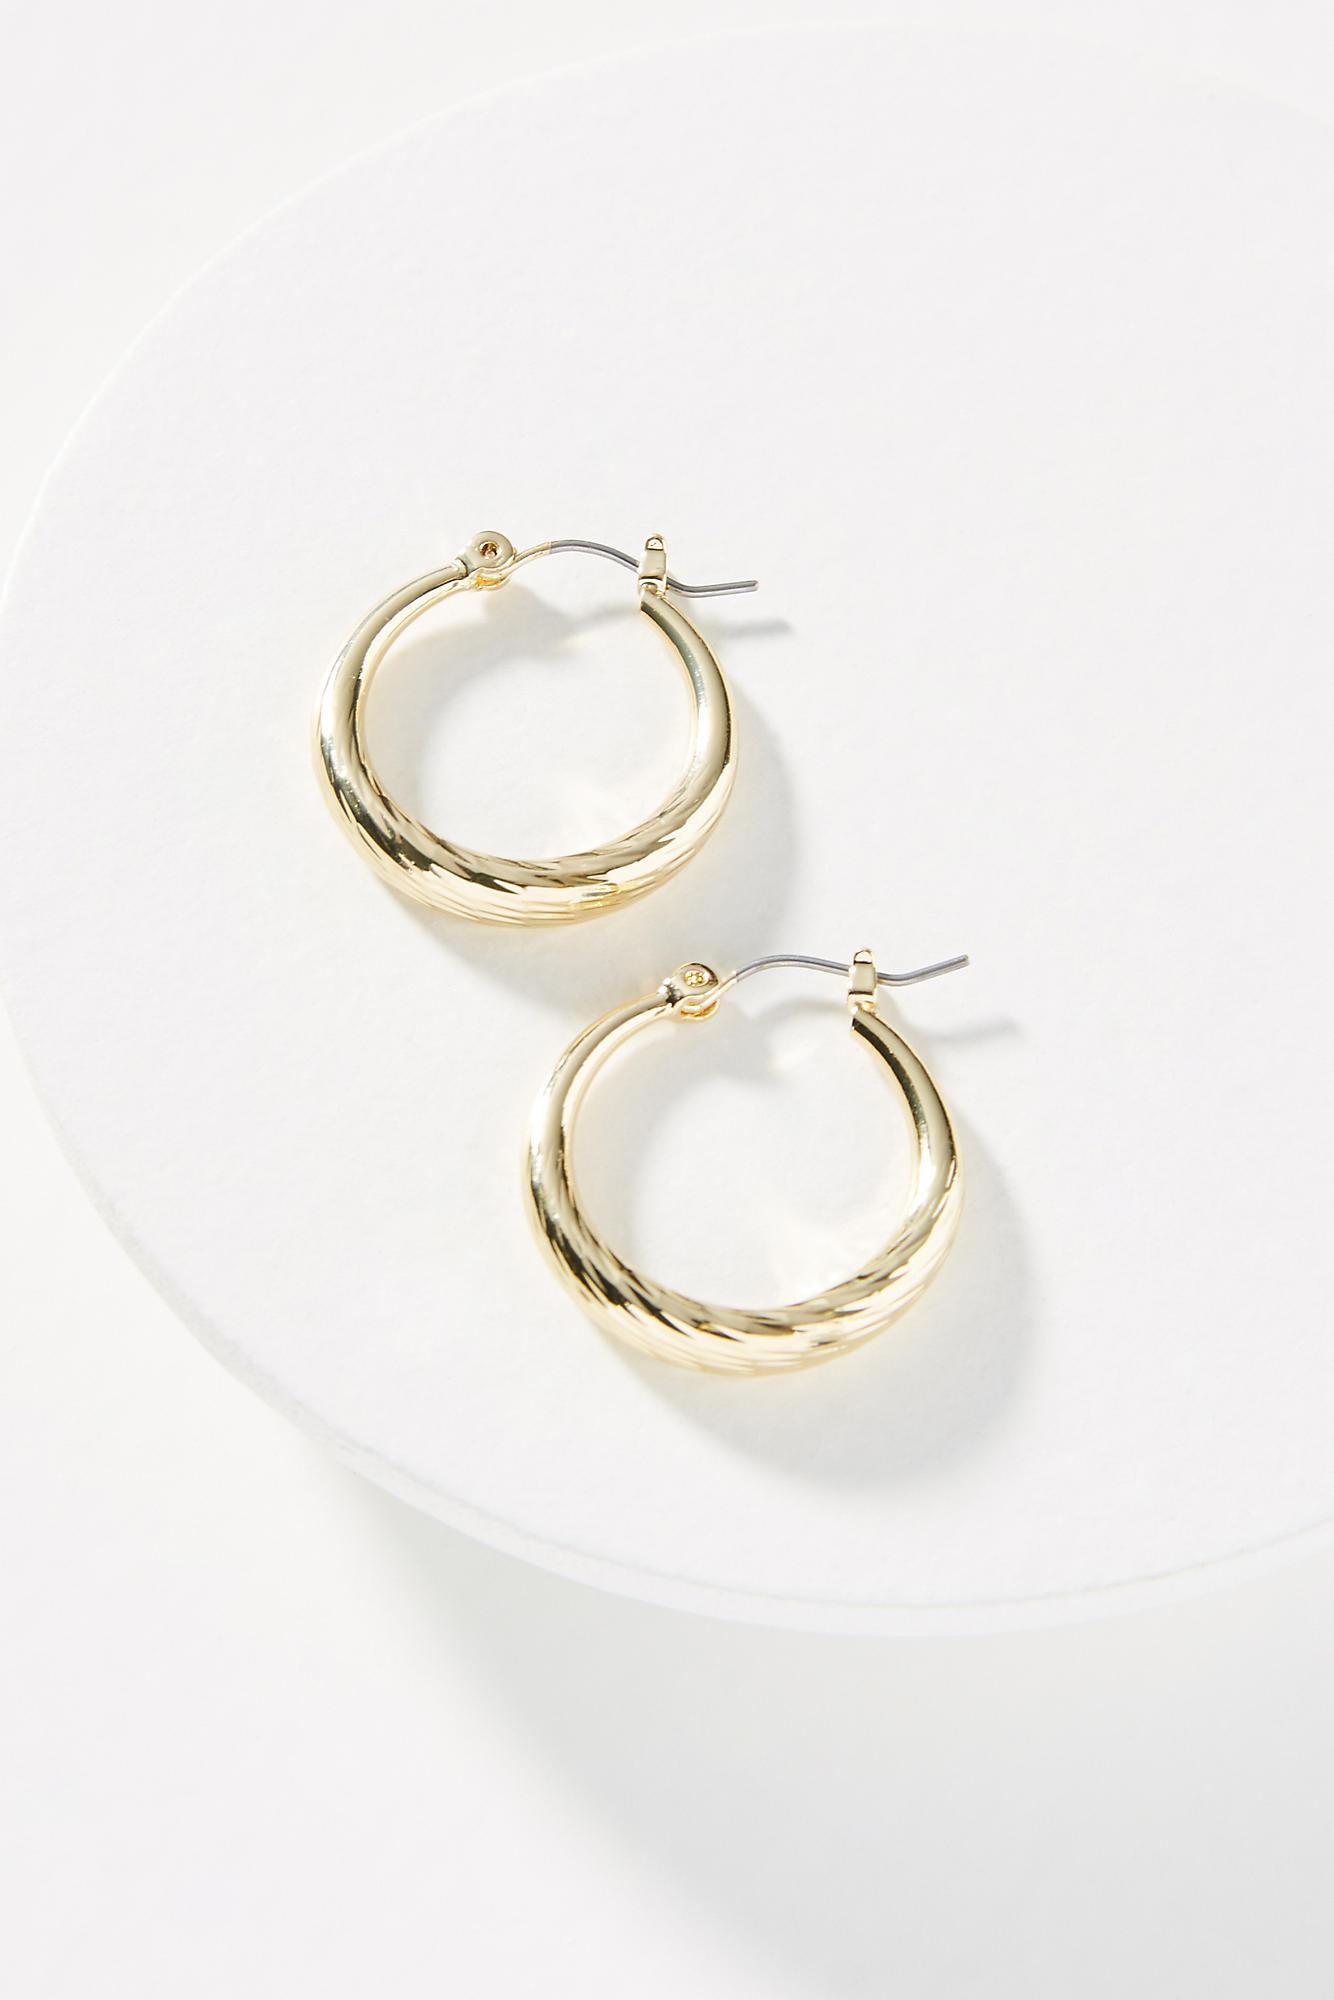 Anthropologie Ginger Hugger Hoop Earrings 7gq5cl